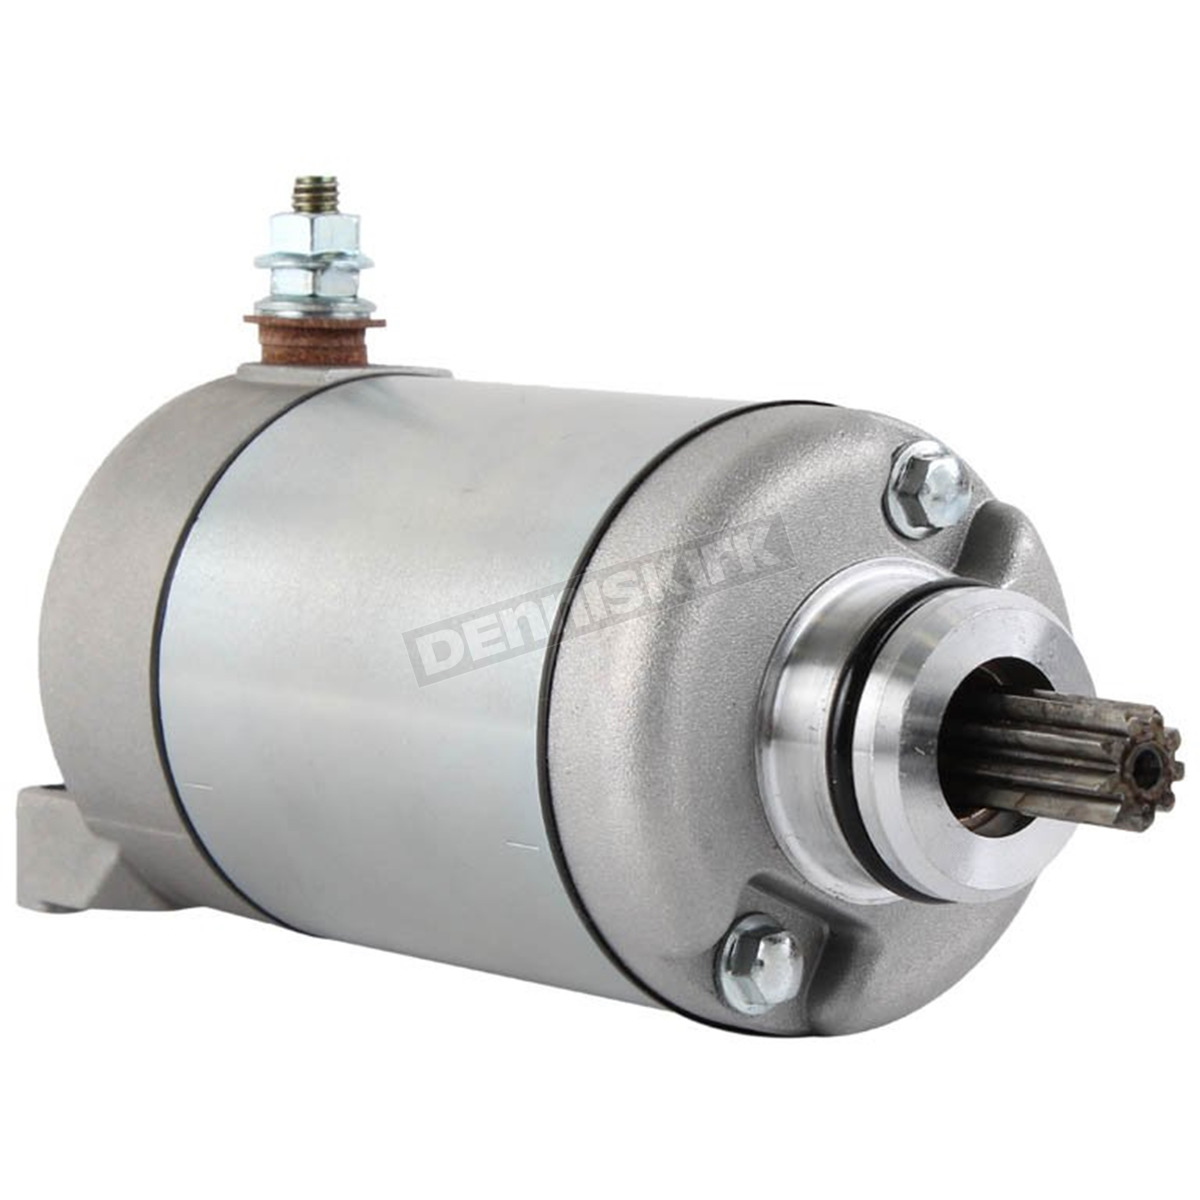 Parts unlimited starter motor smu0384 motorcycle for Nhd inc motor starter